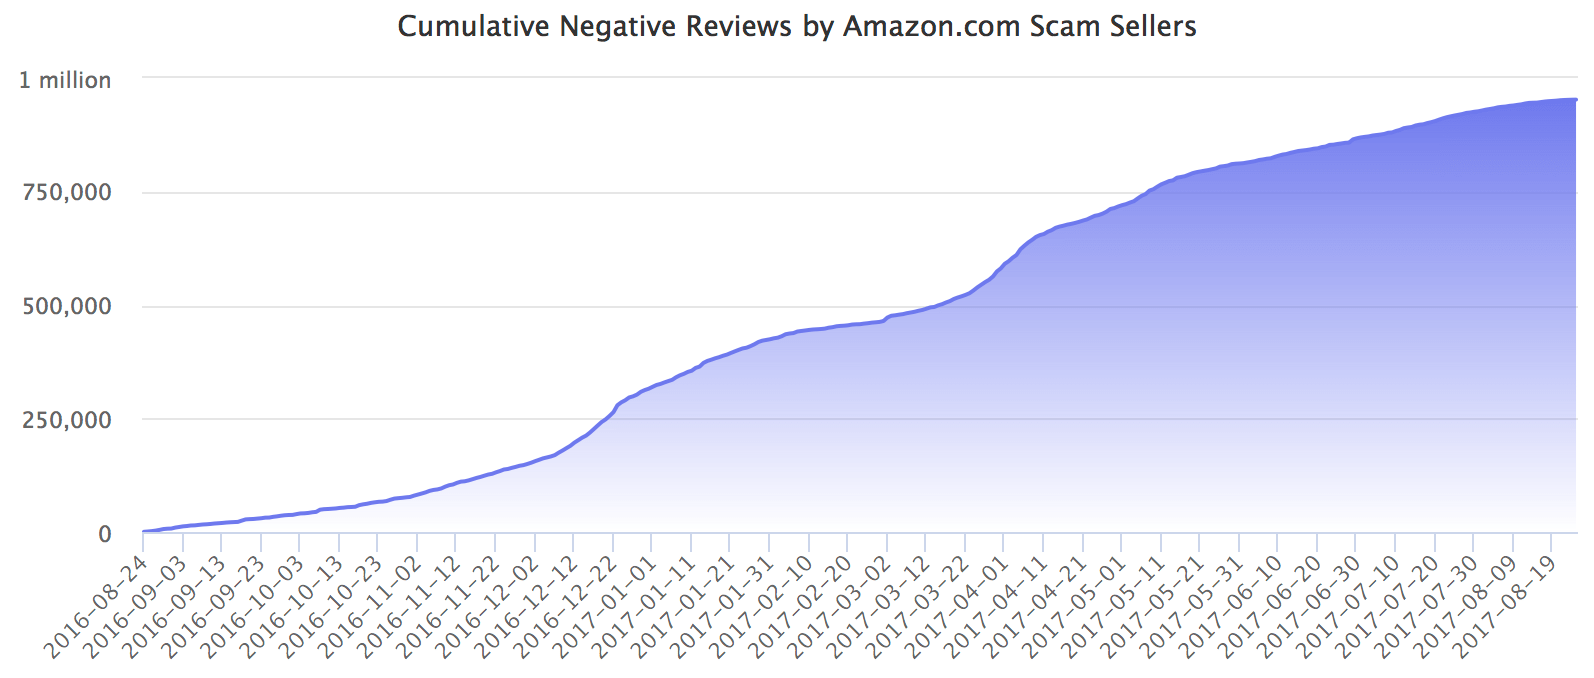 Cumulative Negative Reviews by Amazon.com Scam Sellers